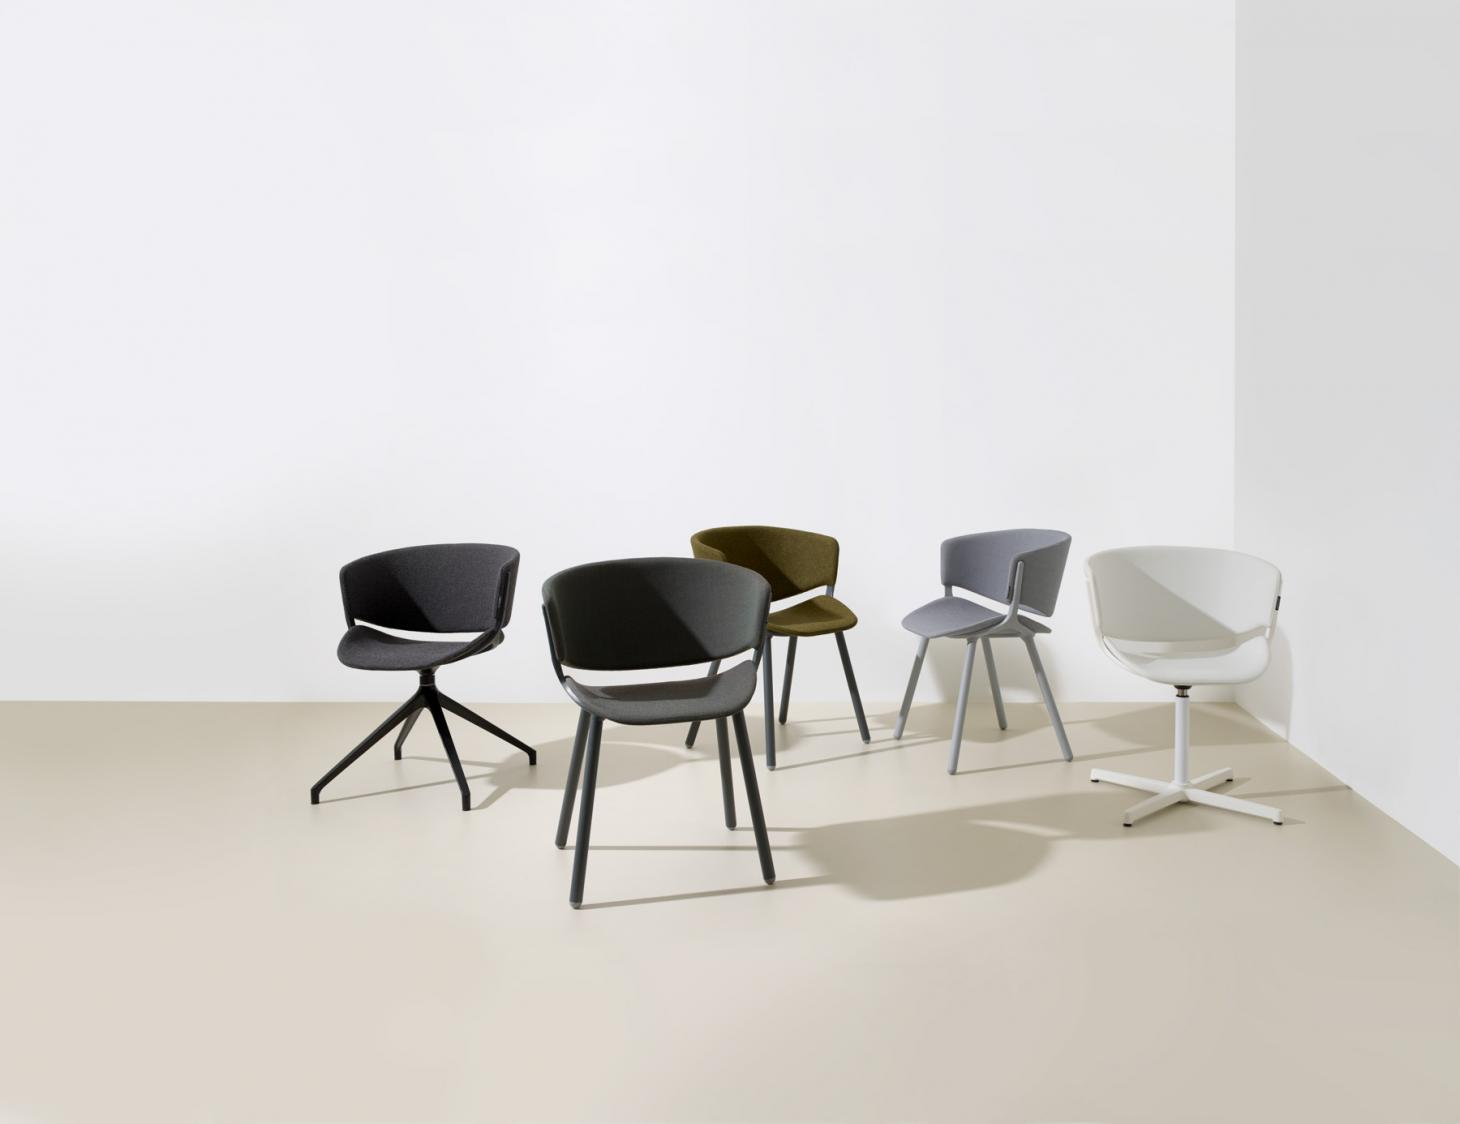 Sustainable office furniture by Luca Nichetto for Offect